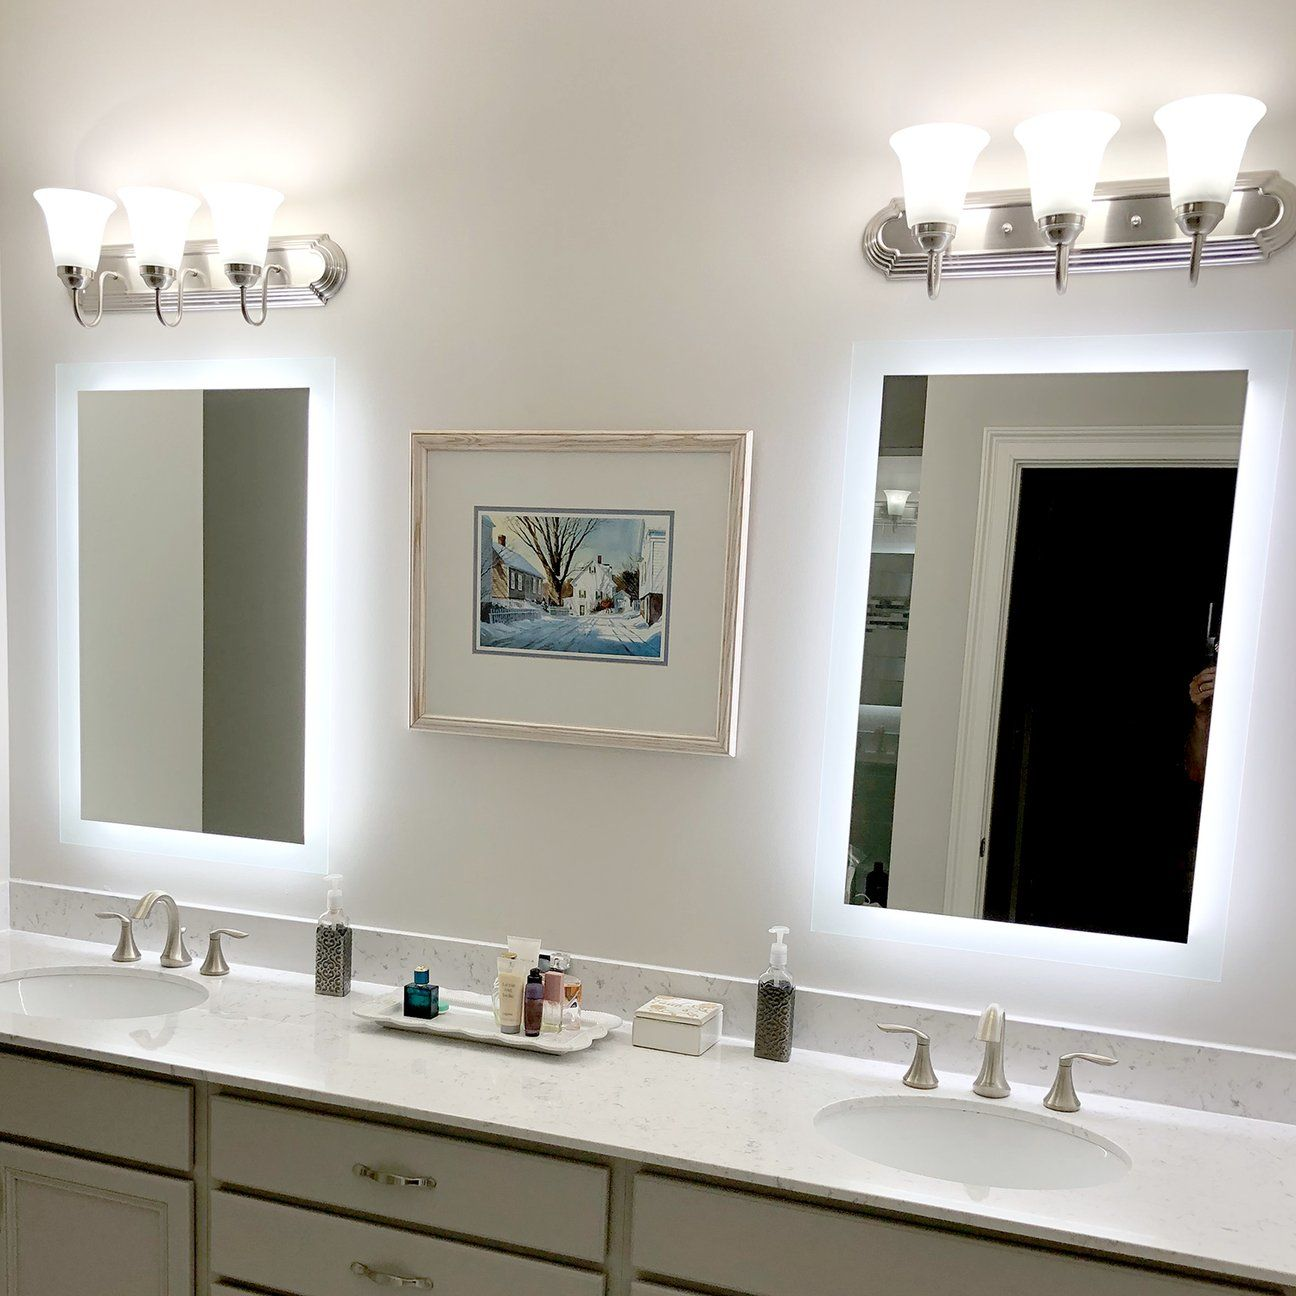 Side Lighted Led Bathroom Vanity Mirror 28 Wide X 40 Tall Rectangular Wall Mounted In 2020 Led Mirror Bathroom Bathroom Vanity Mirror Elegant Bathroom